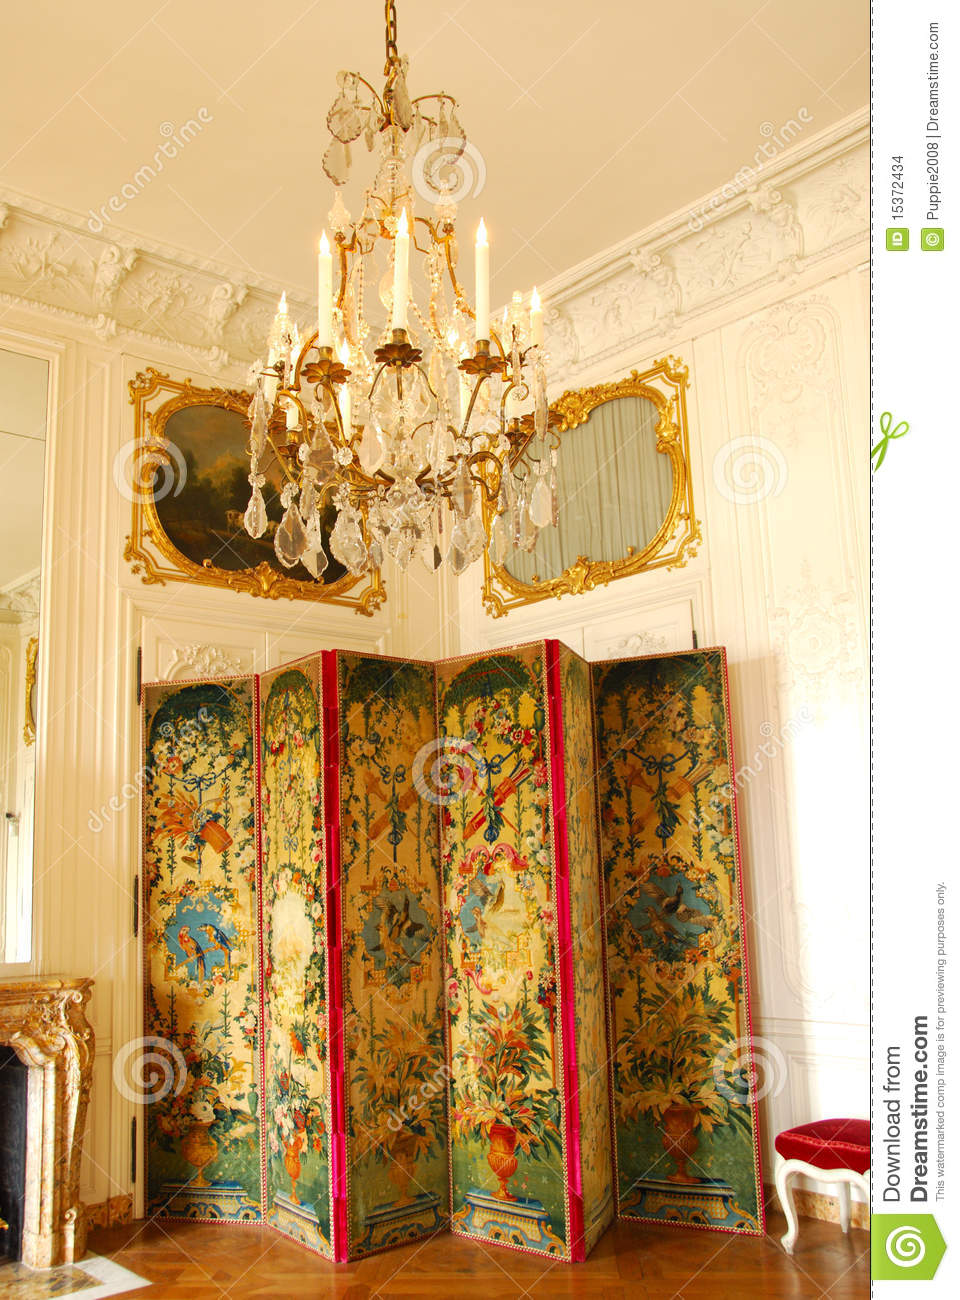 French Chandelier And Room Divider Editorial Stock Image Image of